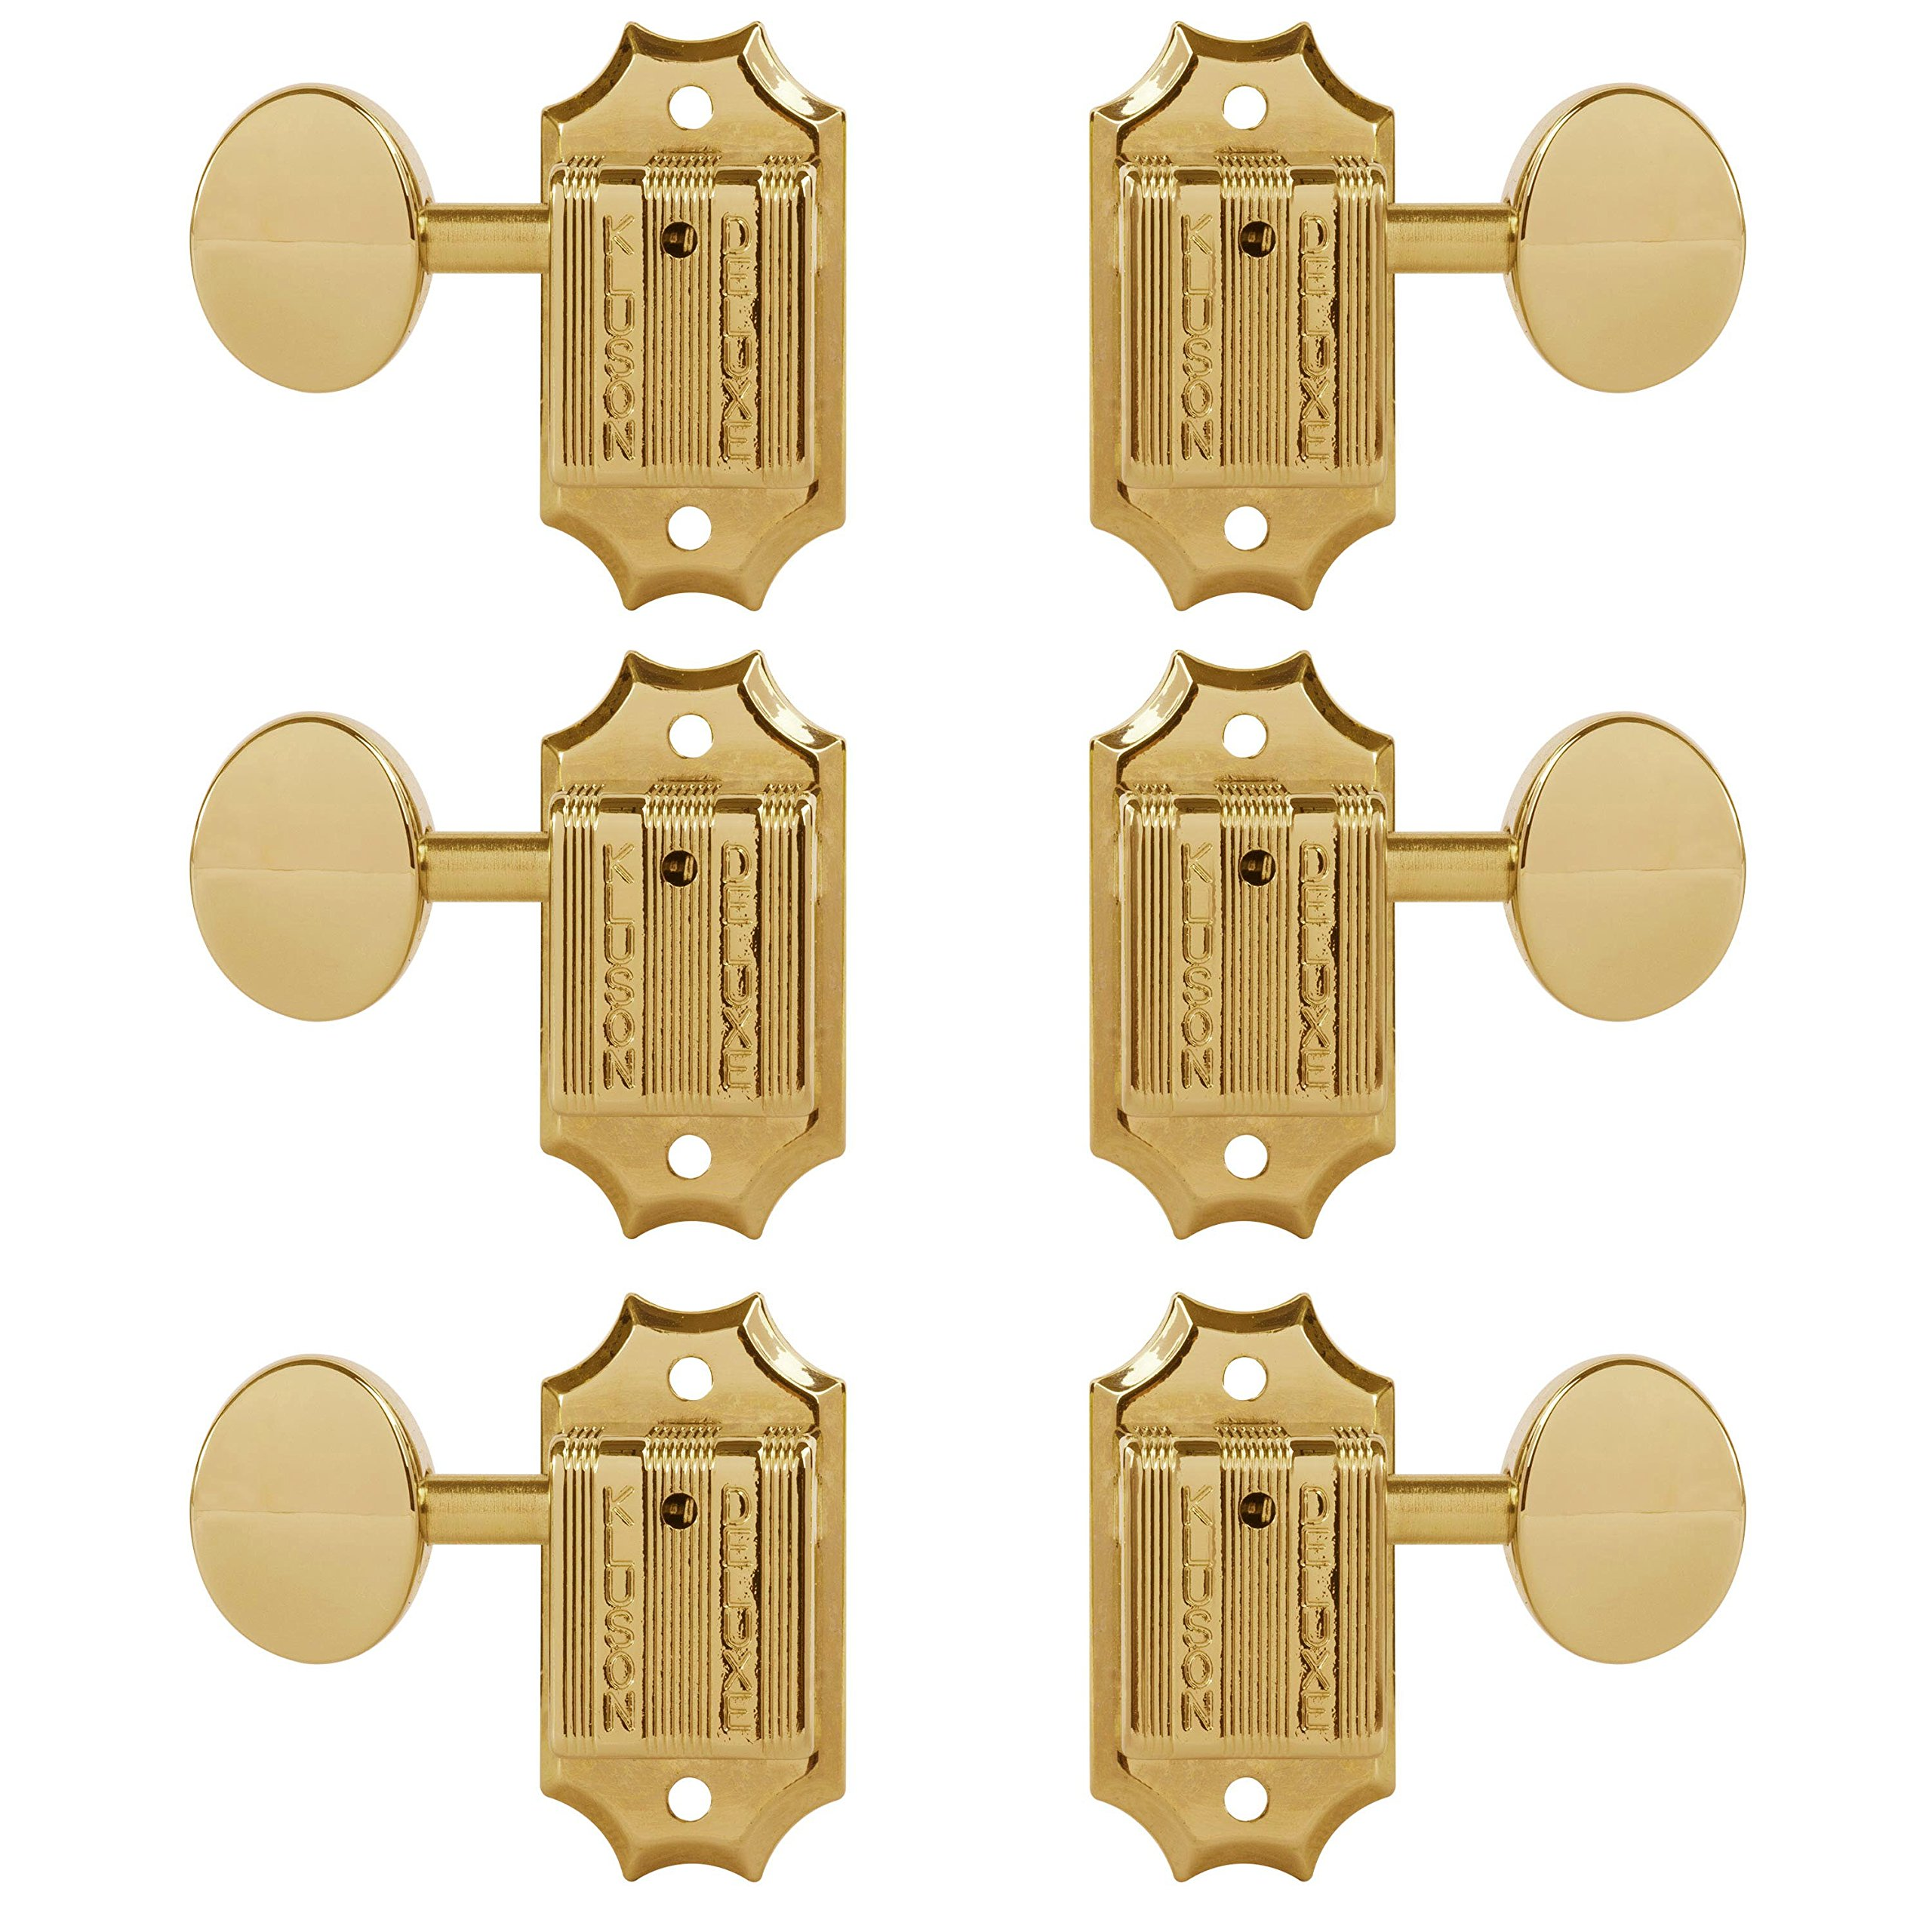 TonePros Kluson 3+3 Tuners with Metal Oval Knobs and Threaded Bushings, Gold